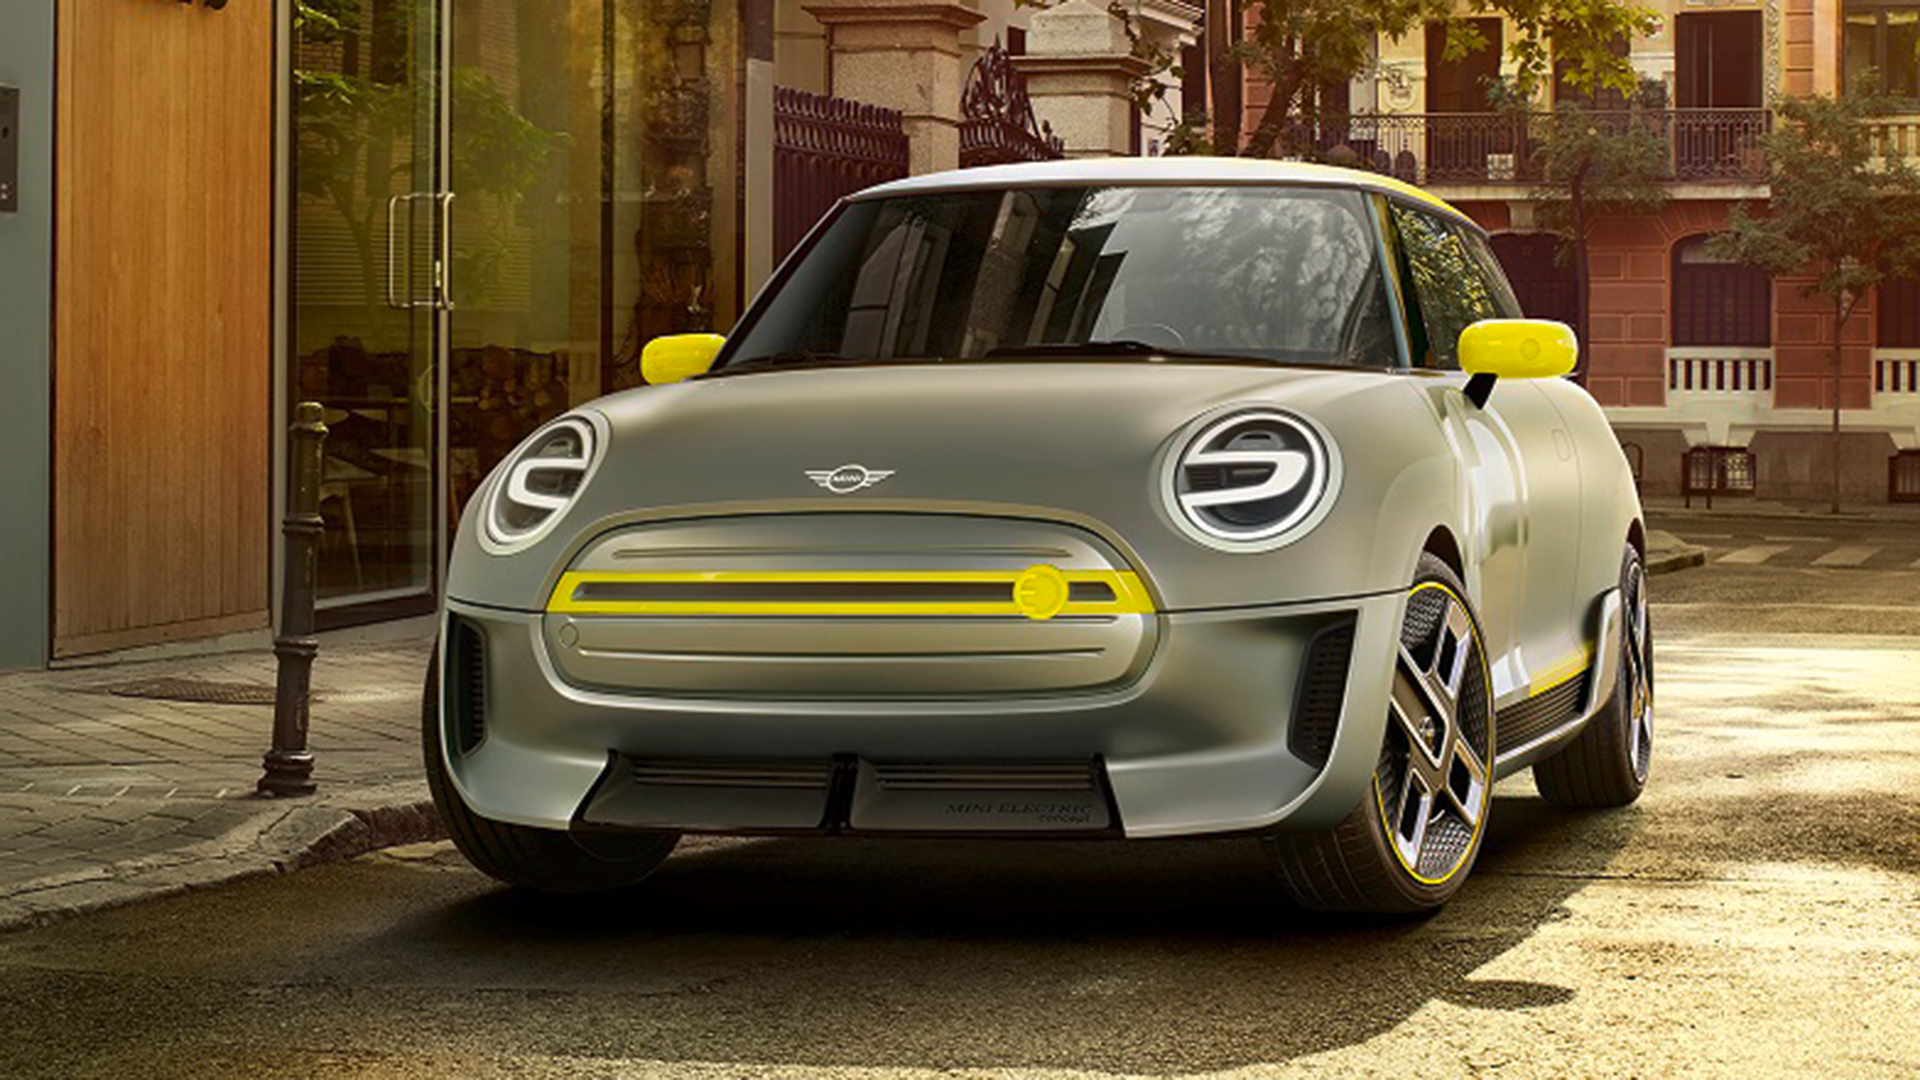 Mini unveils new electric concept ahead of Frankfurt Motor Show debut